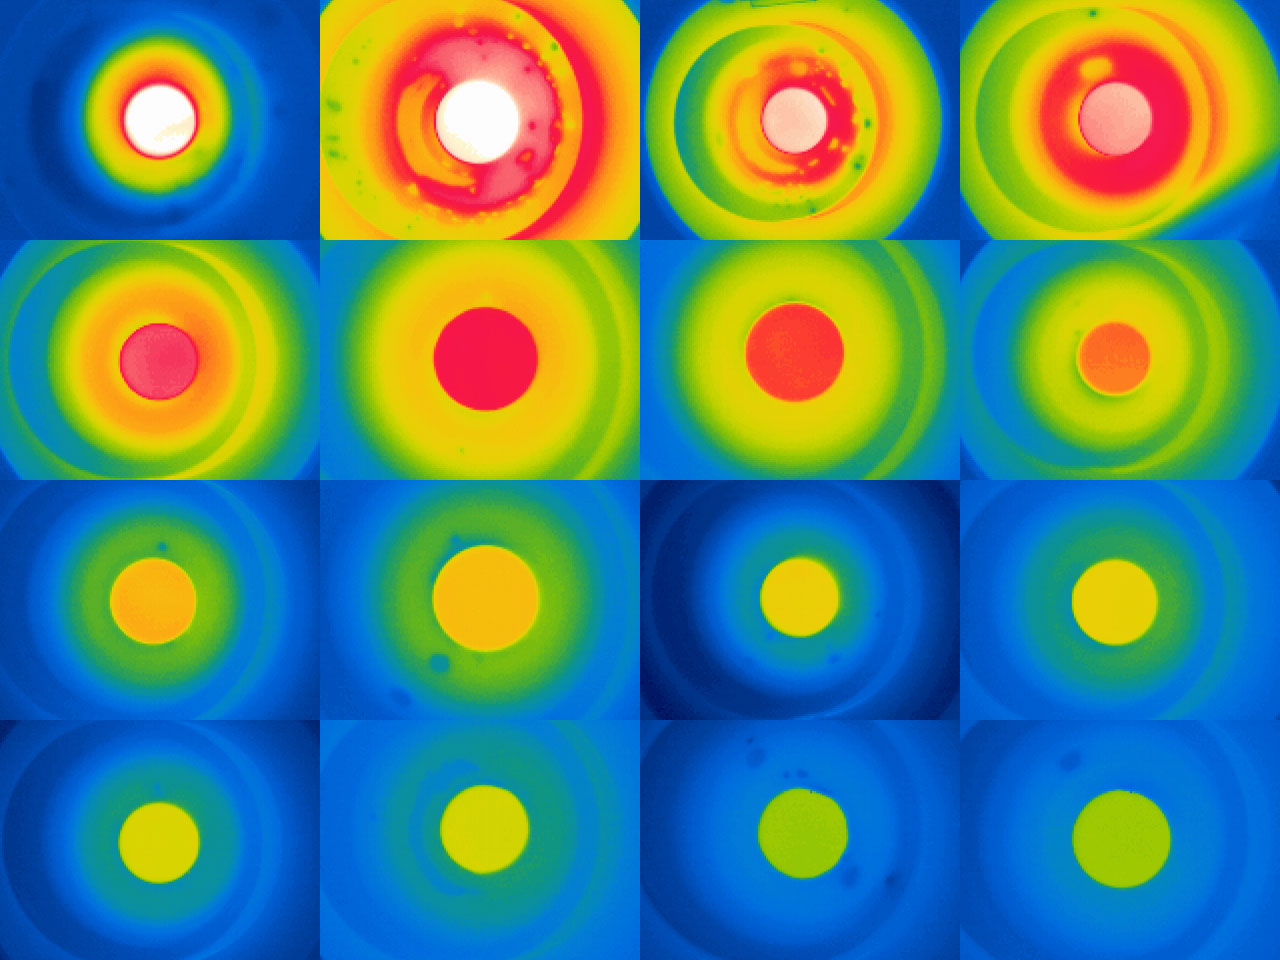 16 thermal images of open lid of the SIGG bottle (chronological from left to right, top to bottom